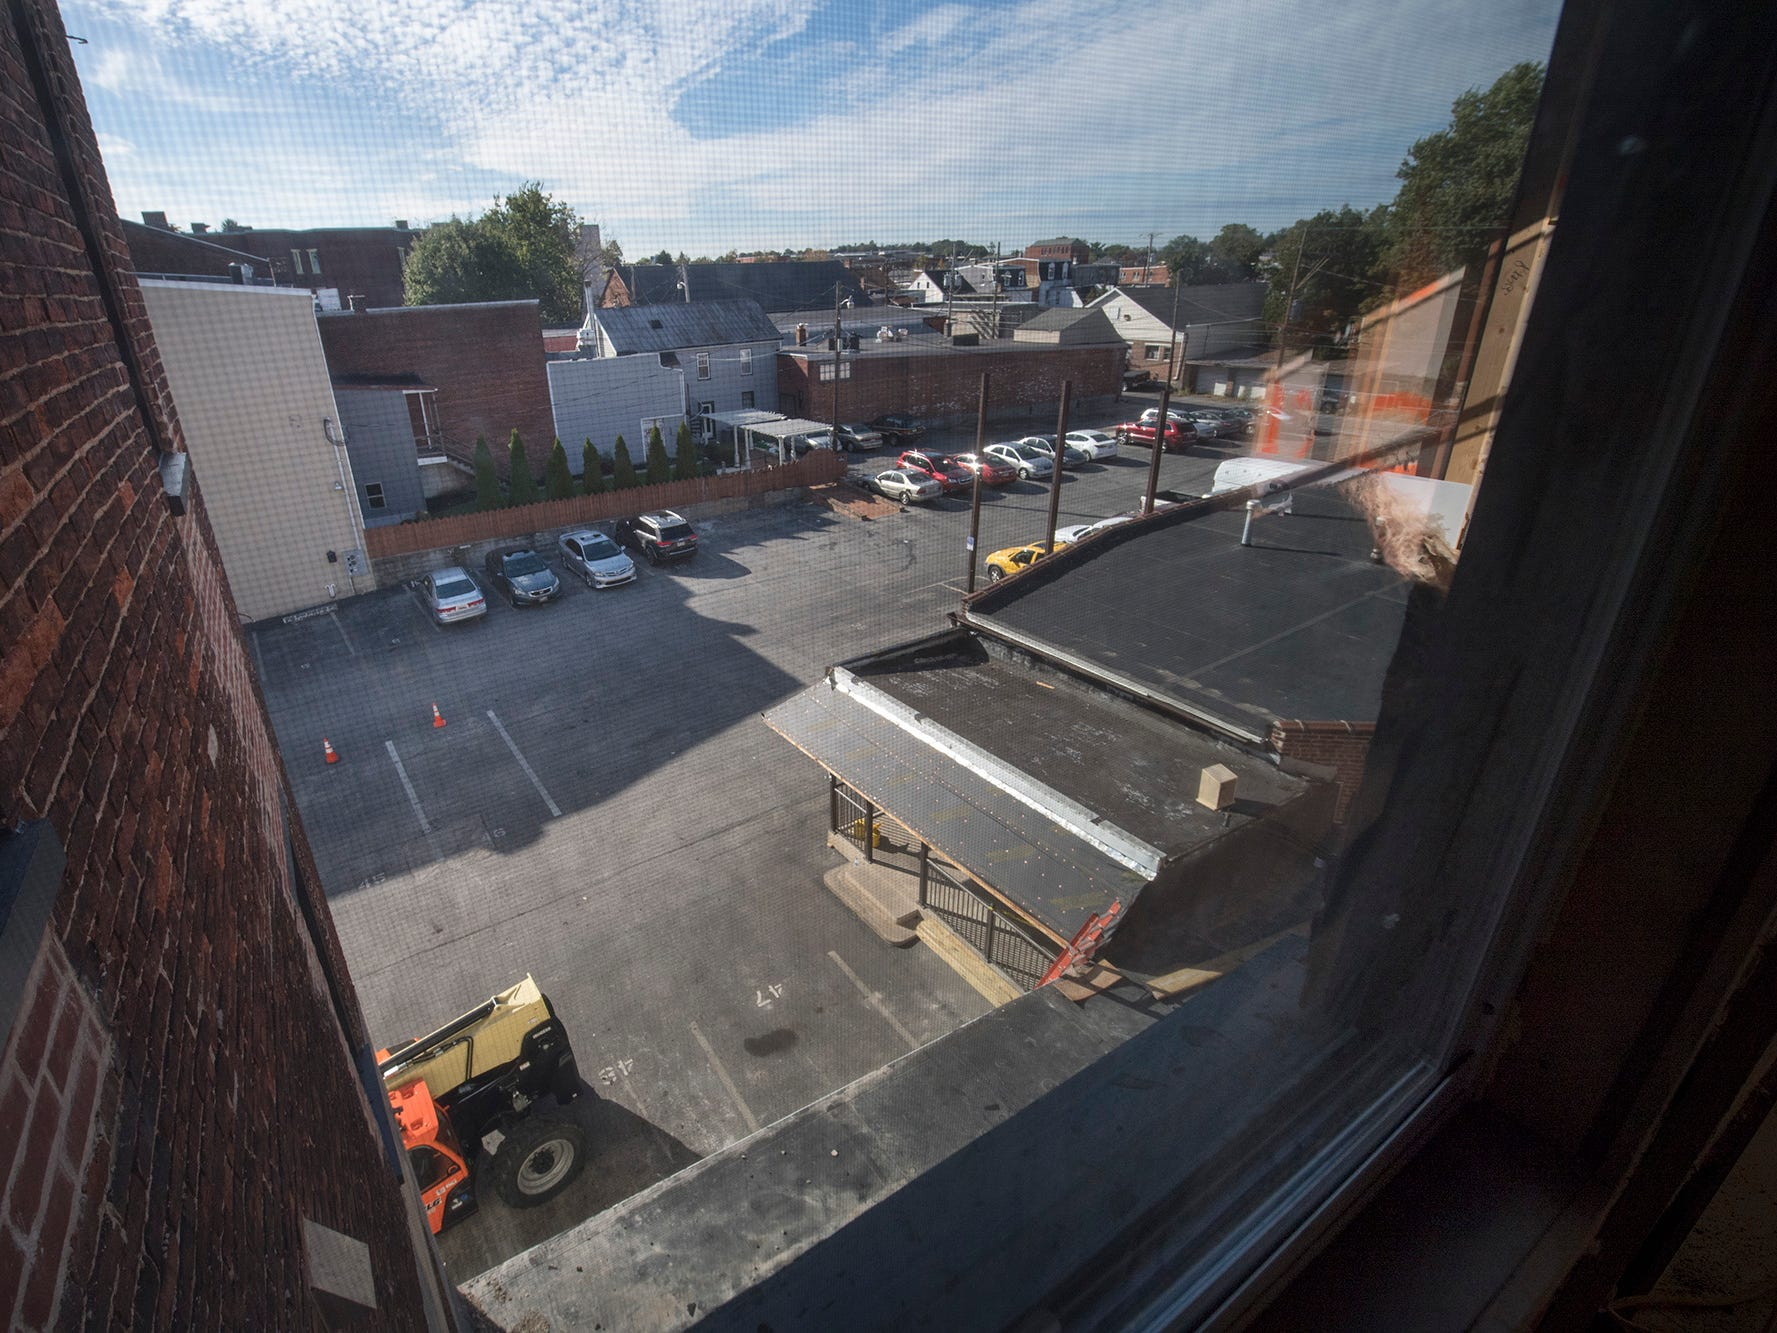 A view of the parking lot from an upper floor of the Doll Building at 337 W. Market Street in York.